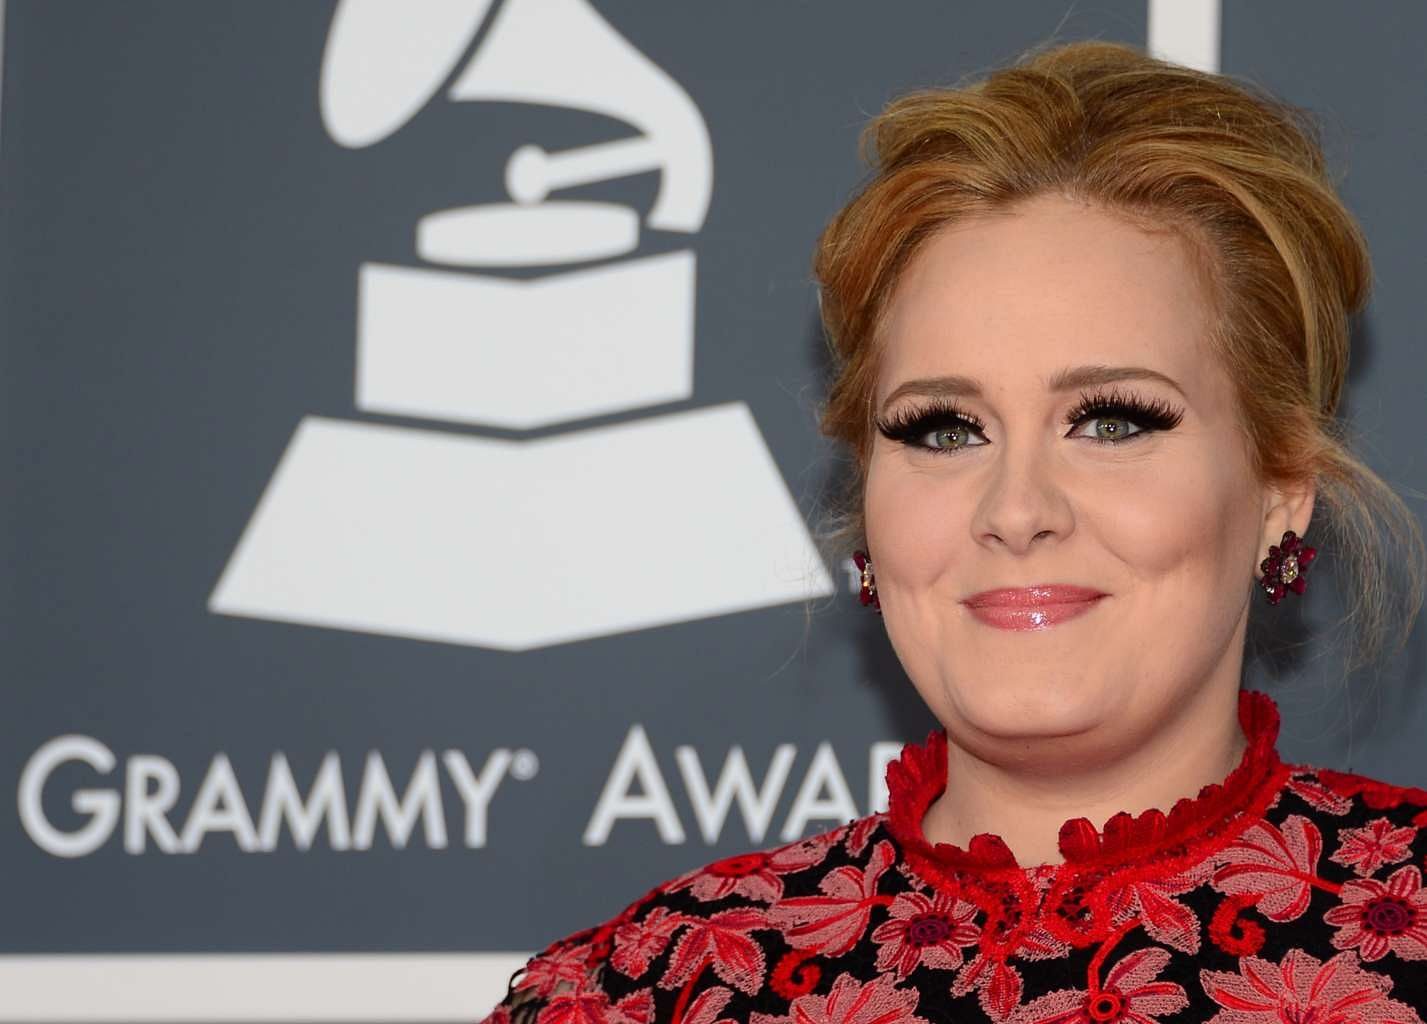 Adele Reflects on 21, Teases 25 and Reveals Why She Likes to Live Life Outside the Spotlight